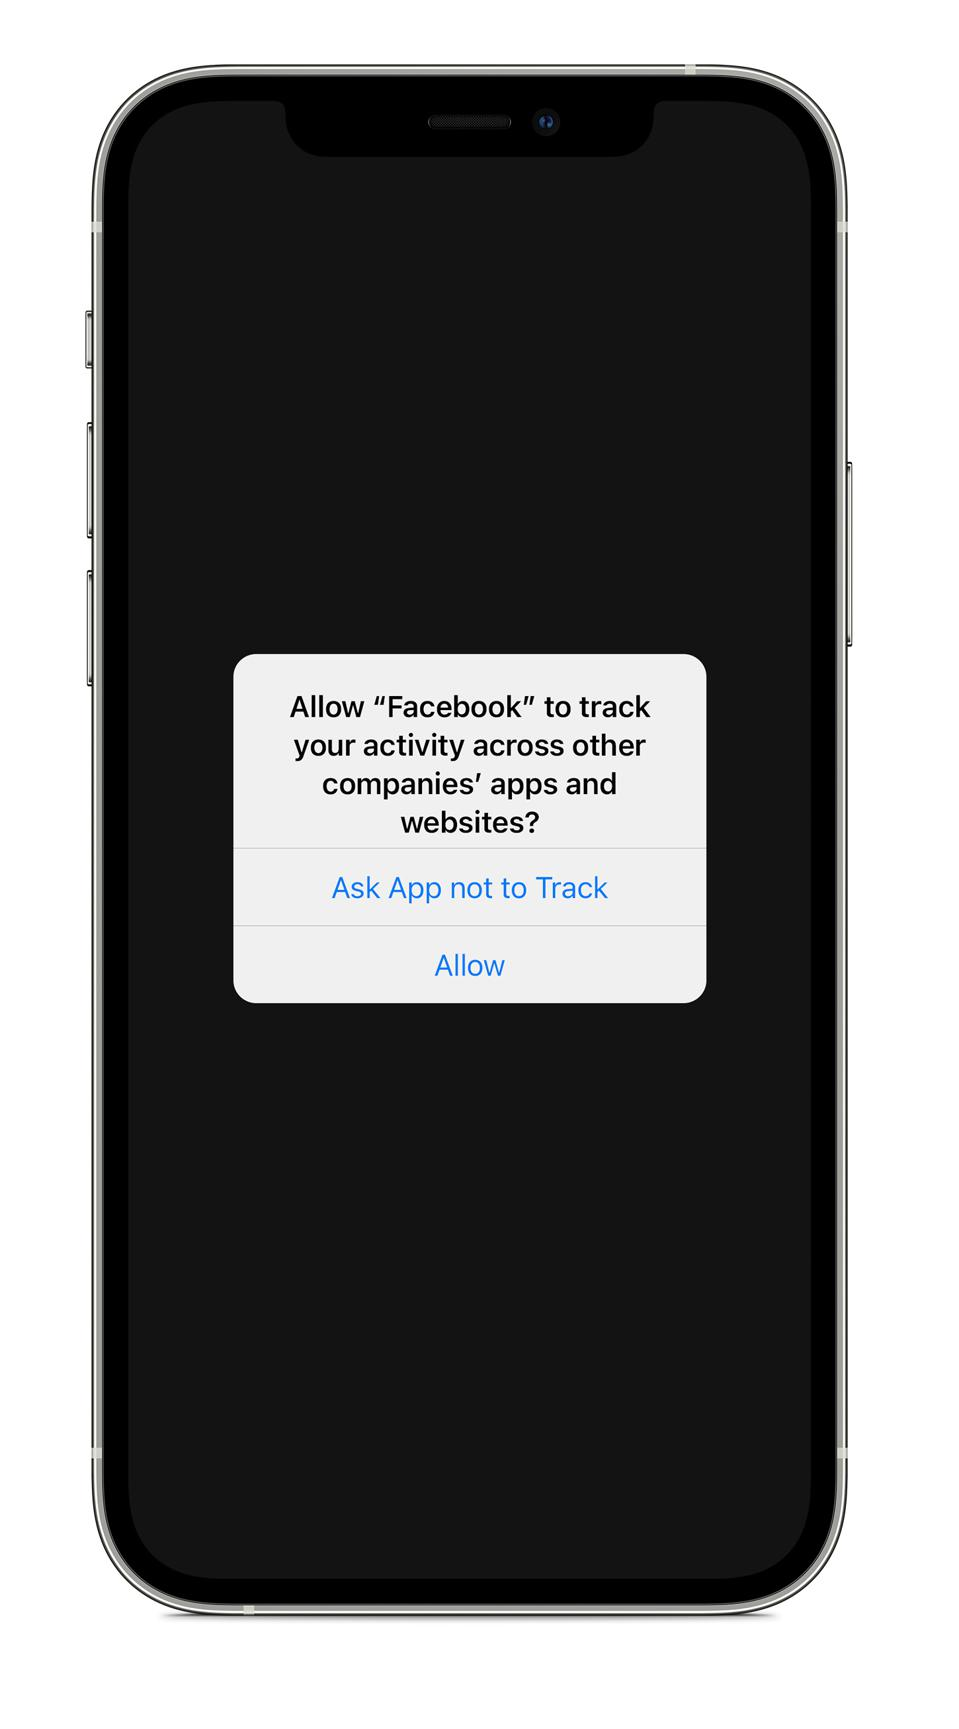 Apple's new iPhone privacy feature ATT forces Facebook to ask to track.